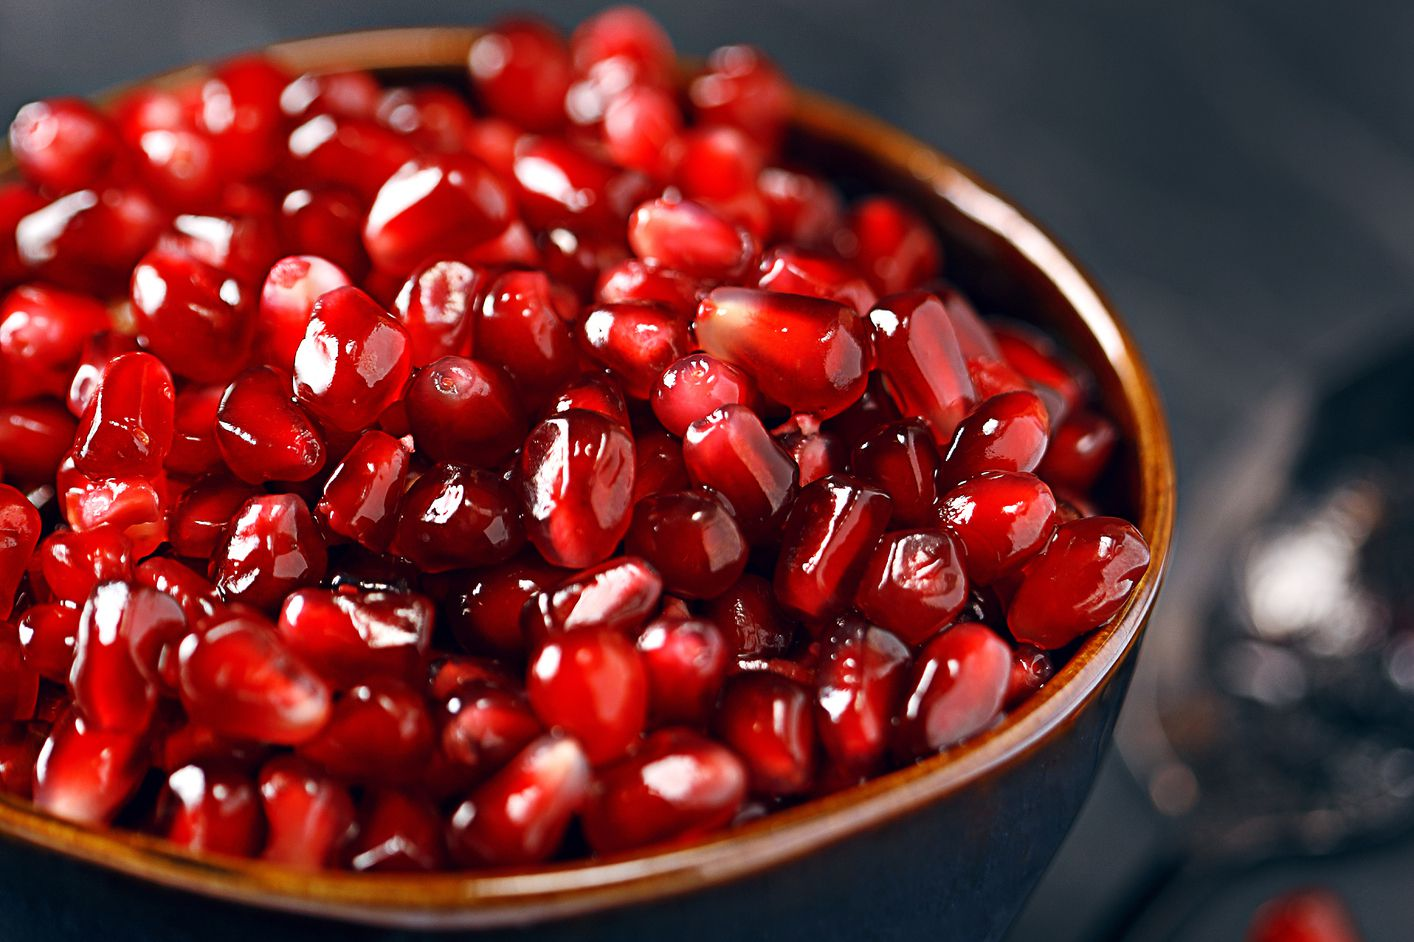 Pomegranate-seeds-GettyImages-700832551-58c076183df78c353ccefa2e